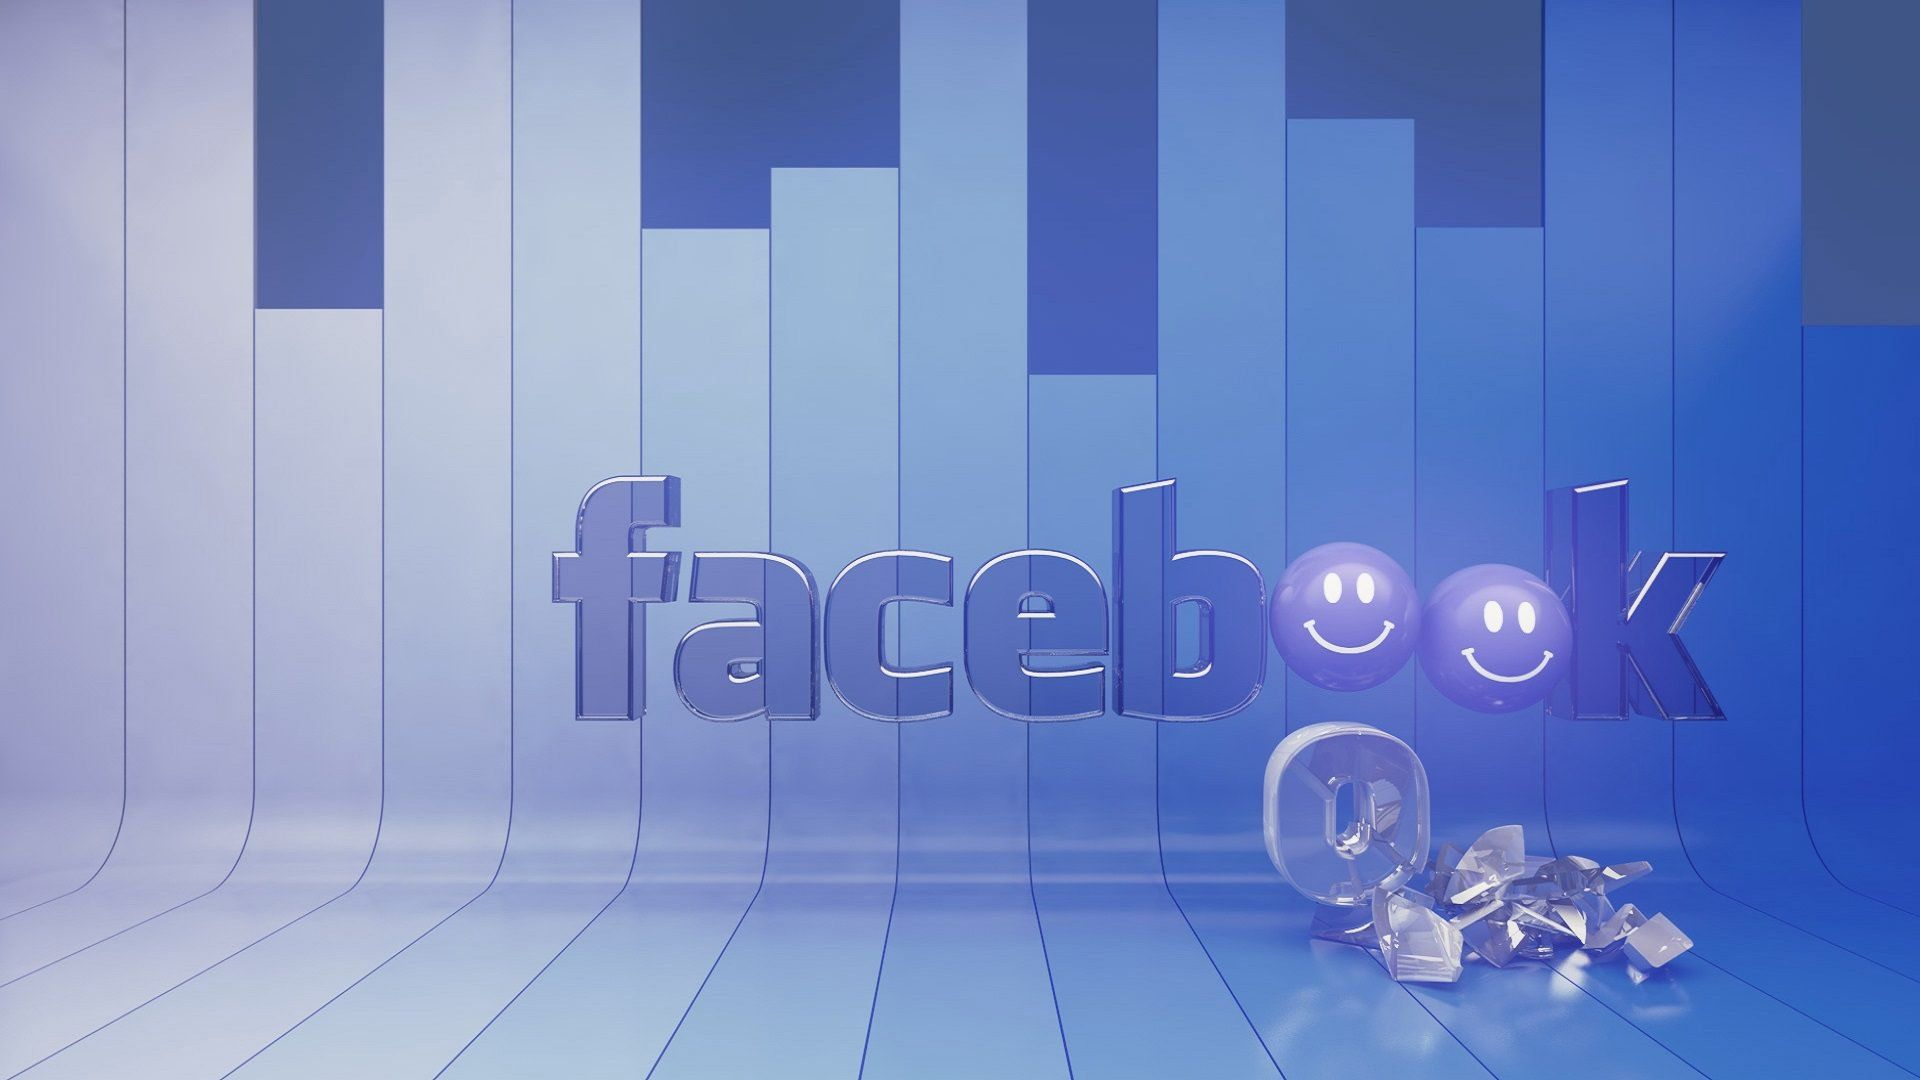 21 Facebook Backgrounds, Social Networking, Pictures